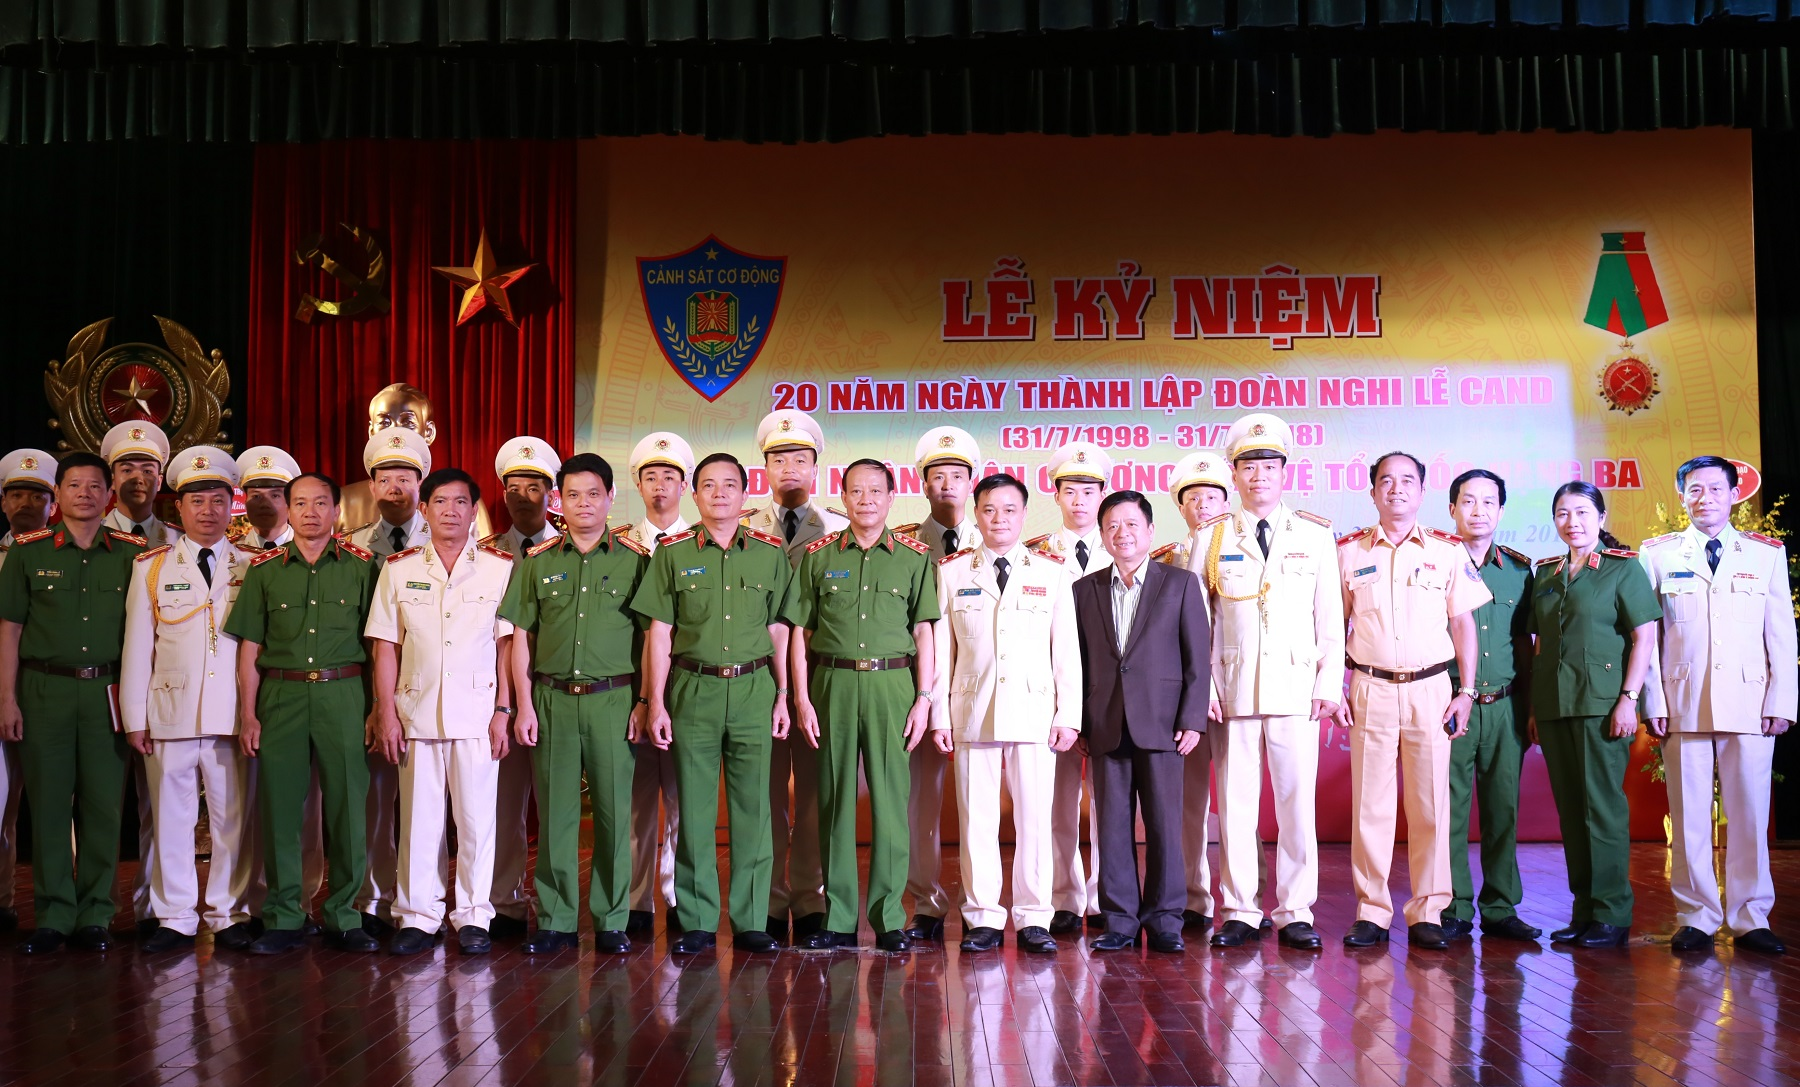 Deputy Minister Le Quy Vuong and delegates at the ceremony.